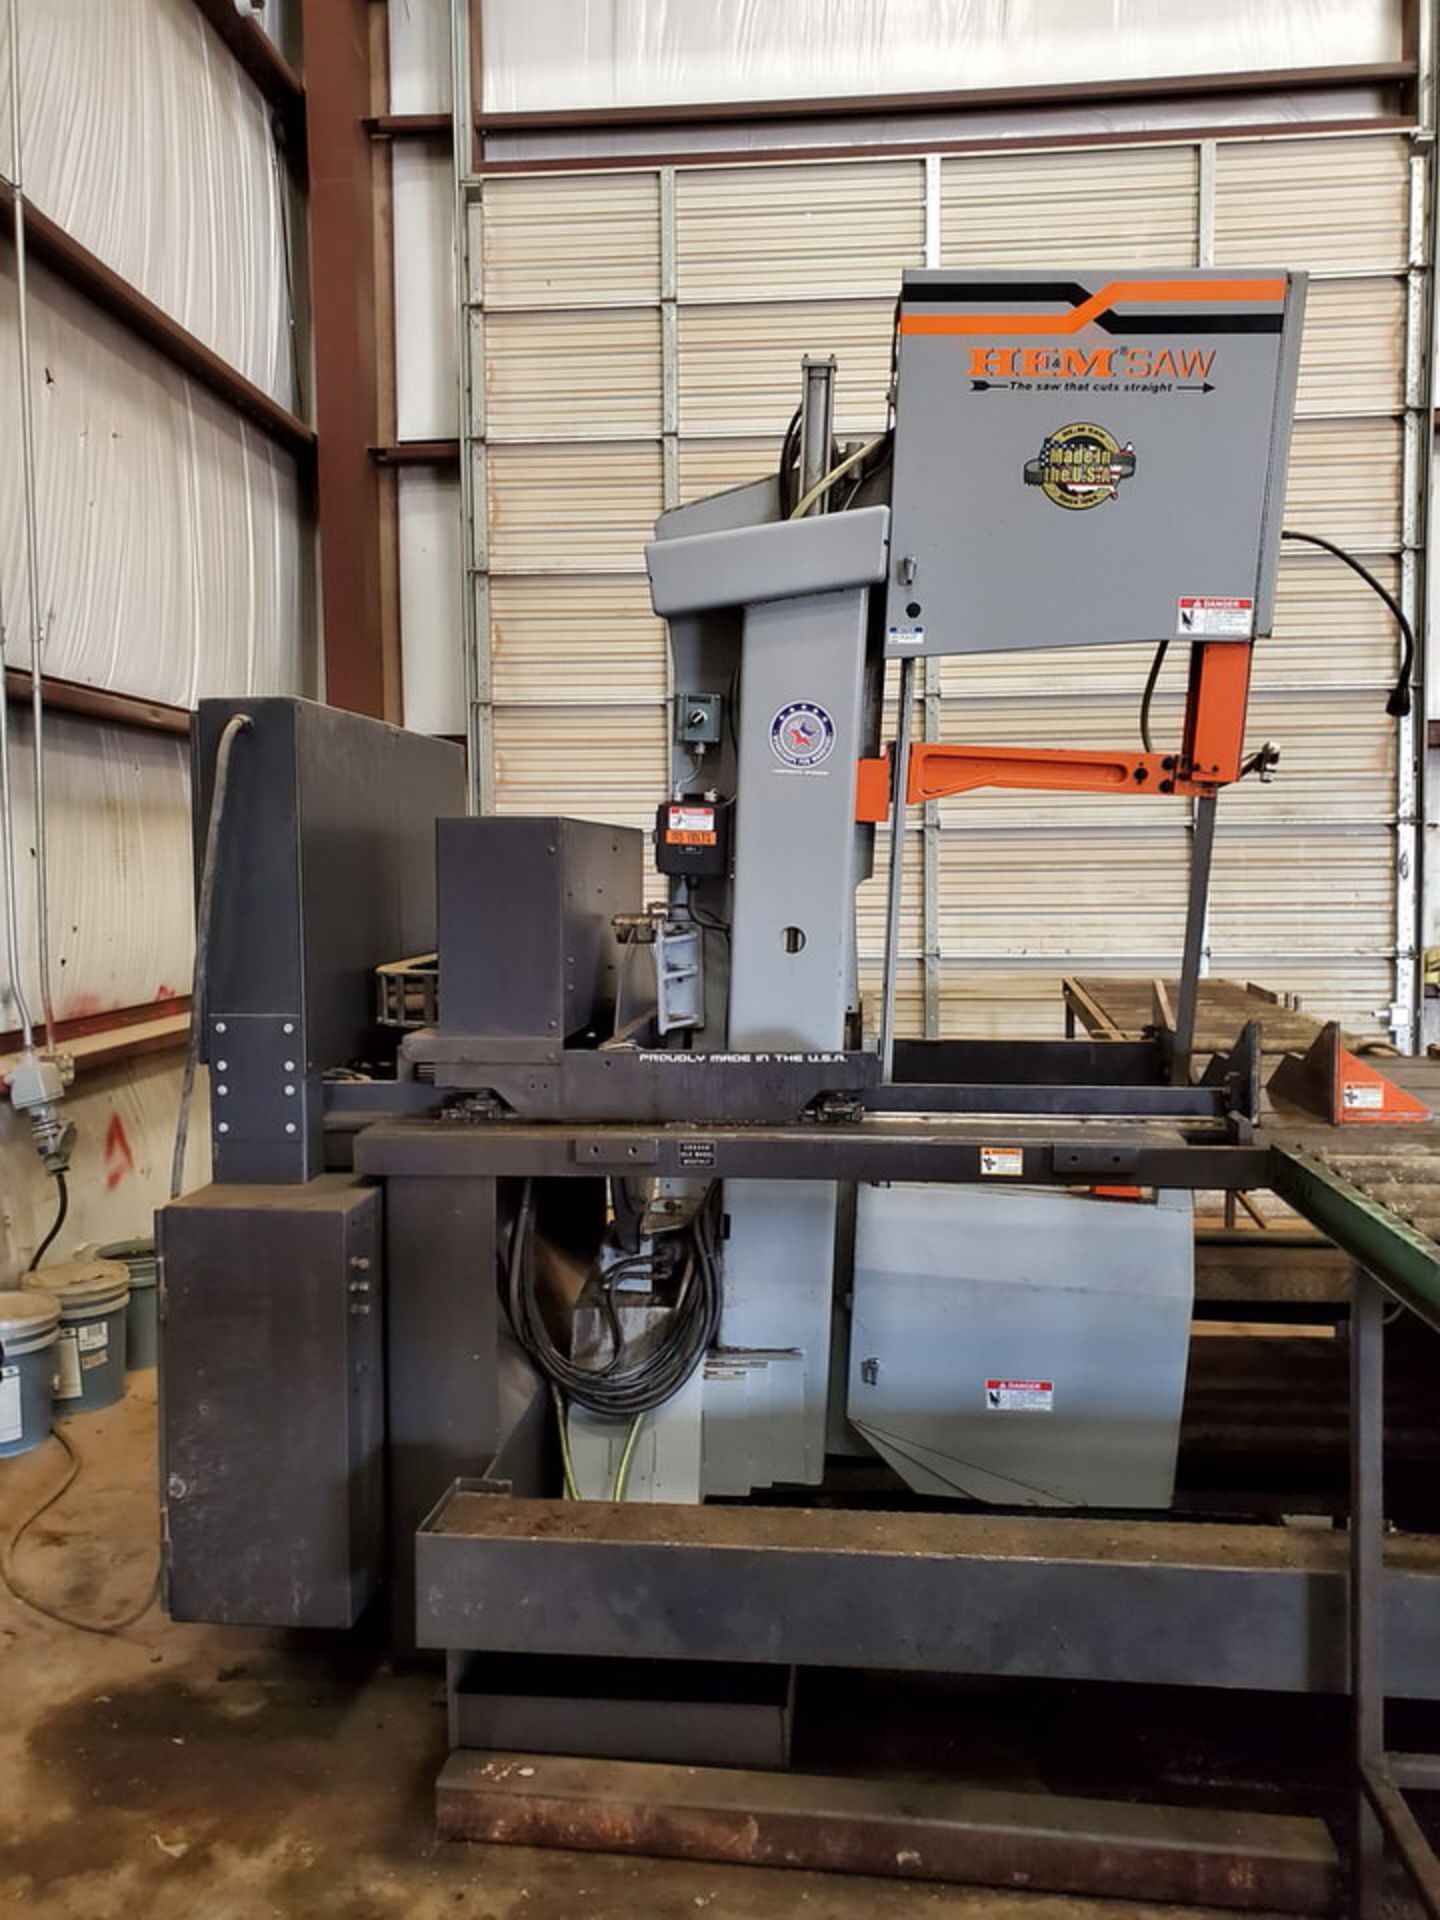 "HEM VT140HM-60-CTS Vertical Bandsaw 440V, 10HP, 23.61A, Blade L: 1-1/2"" x 20' x .050""; W/ Spare - Image 2 of 16"